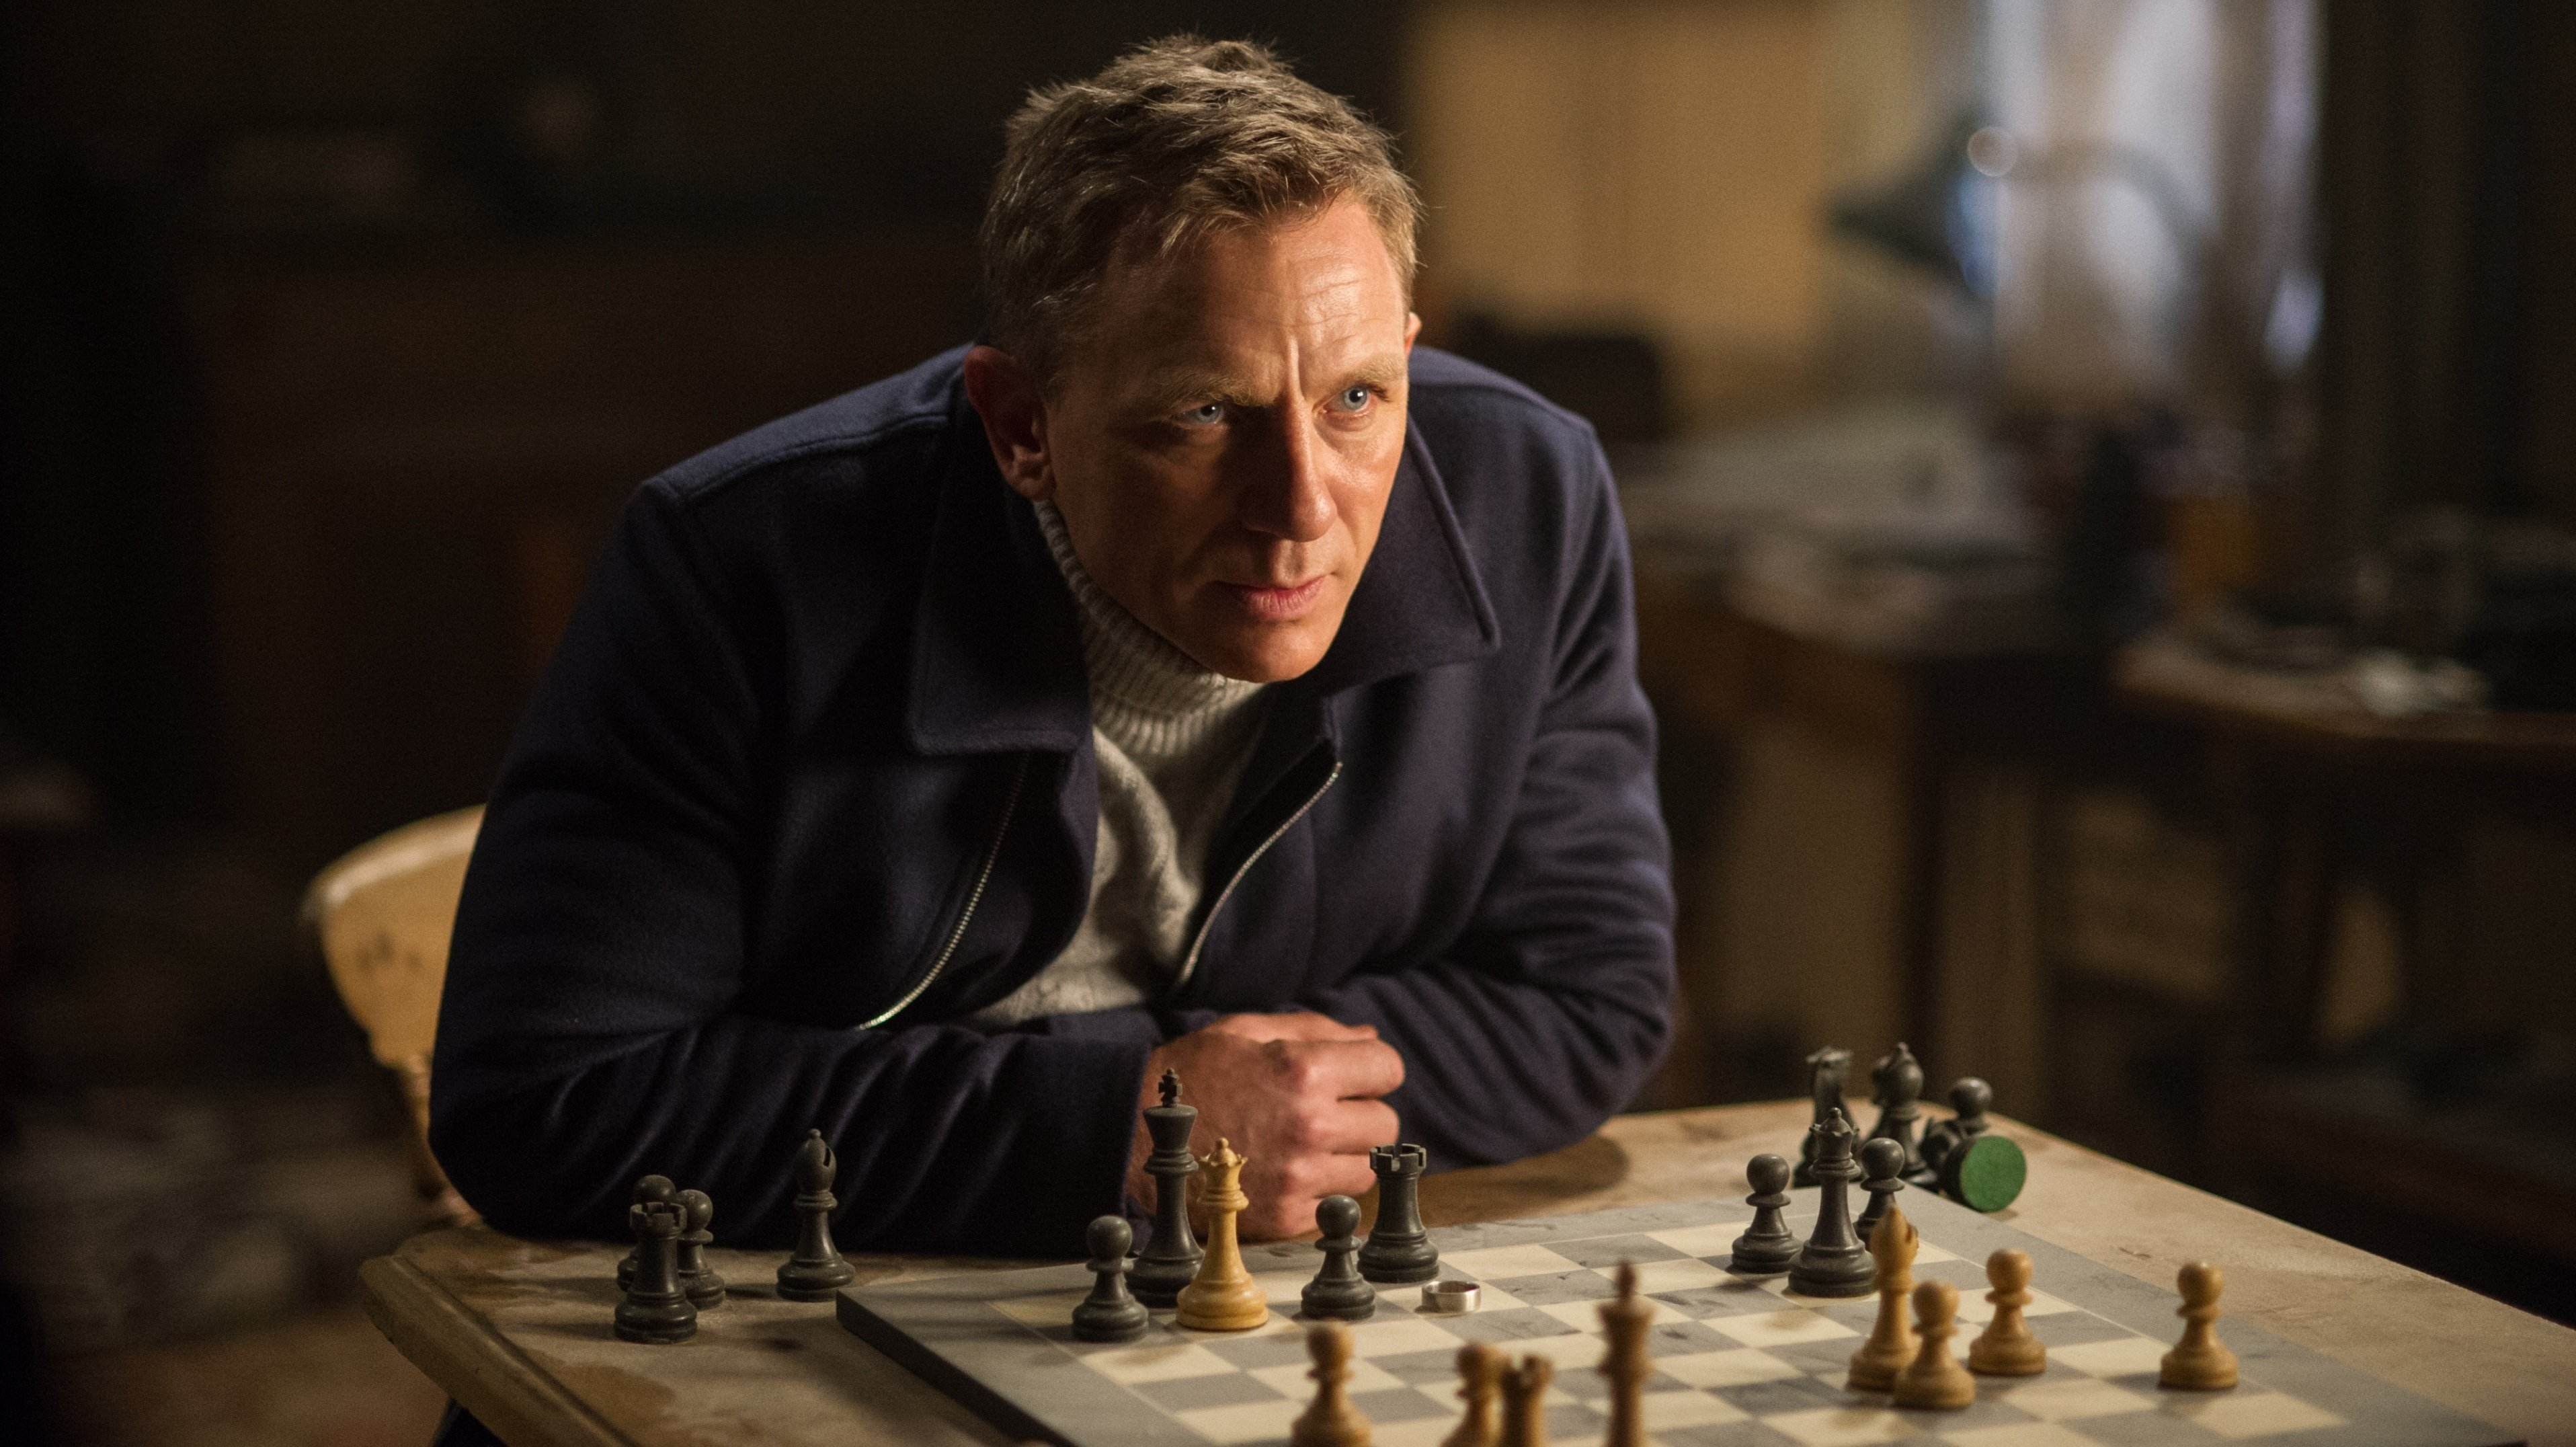 Daniel Craig Starring, Executive-Producing in Jonathan Franzen's 'Purity' for Showtime